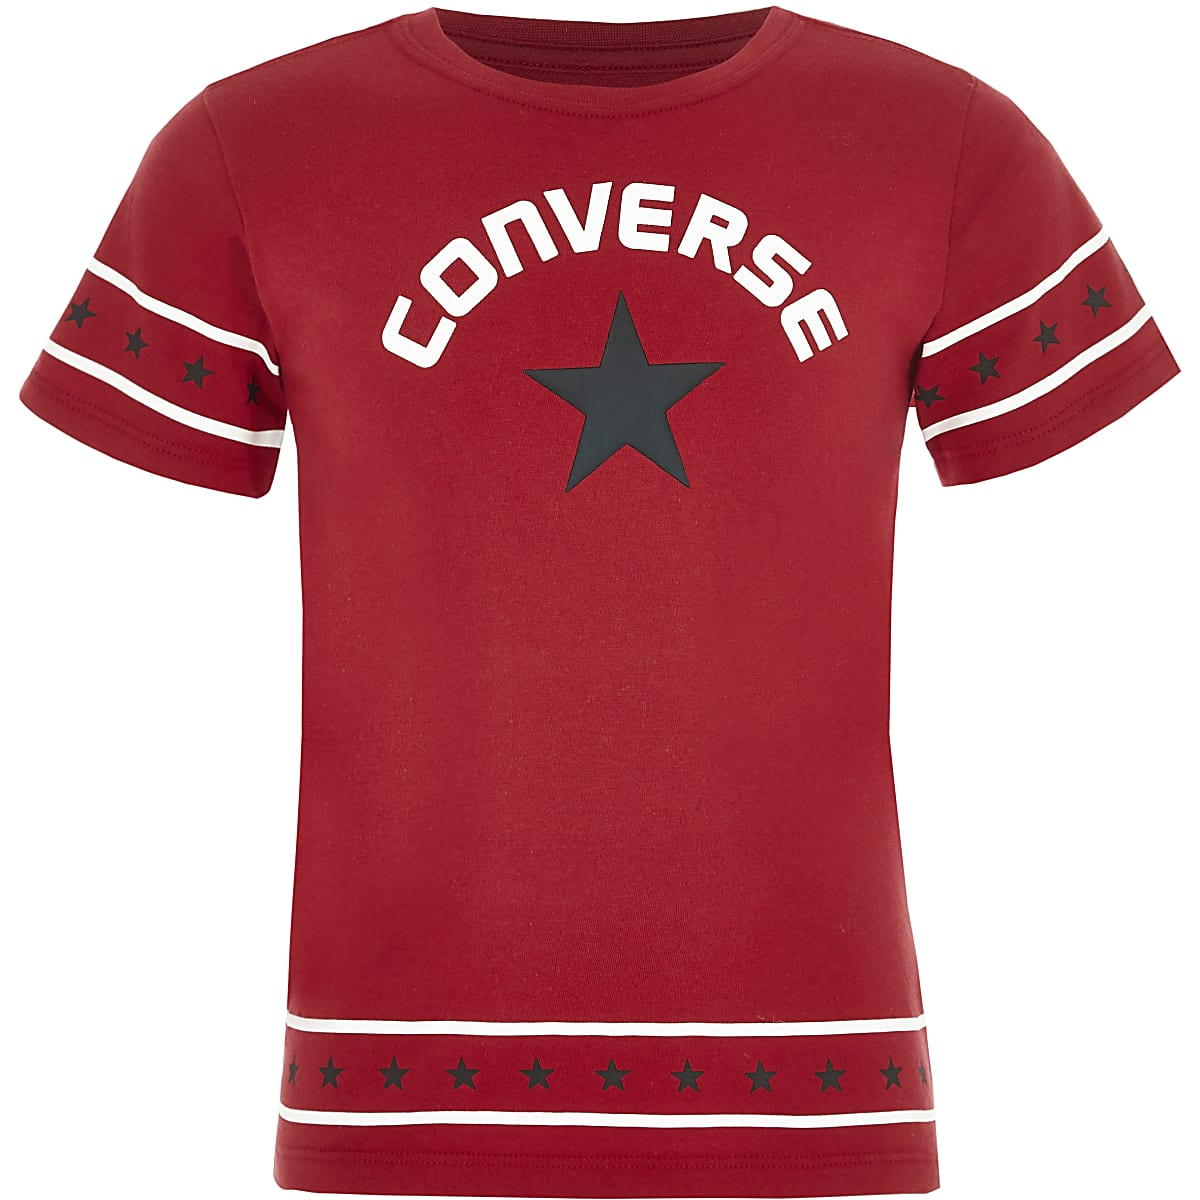 d9aef866da13 Girls Converse red star trim T-shirt - T-Shirts - Tops - girls